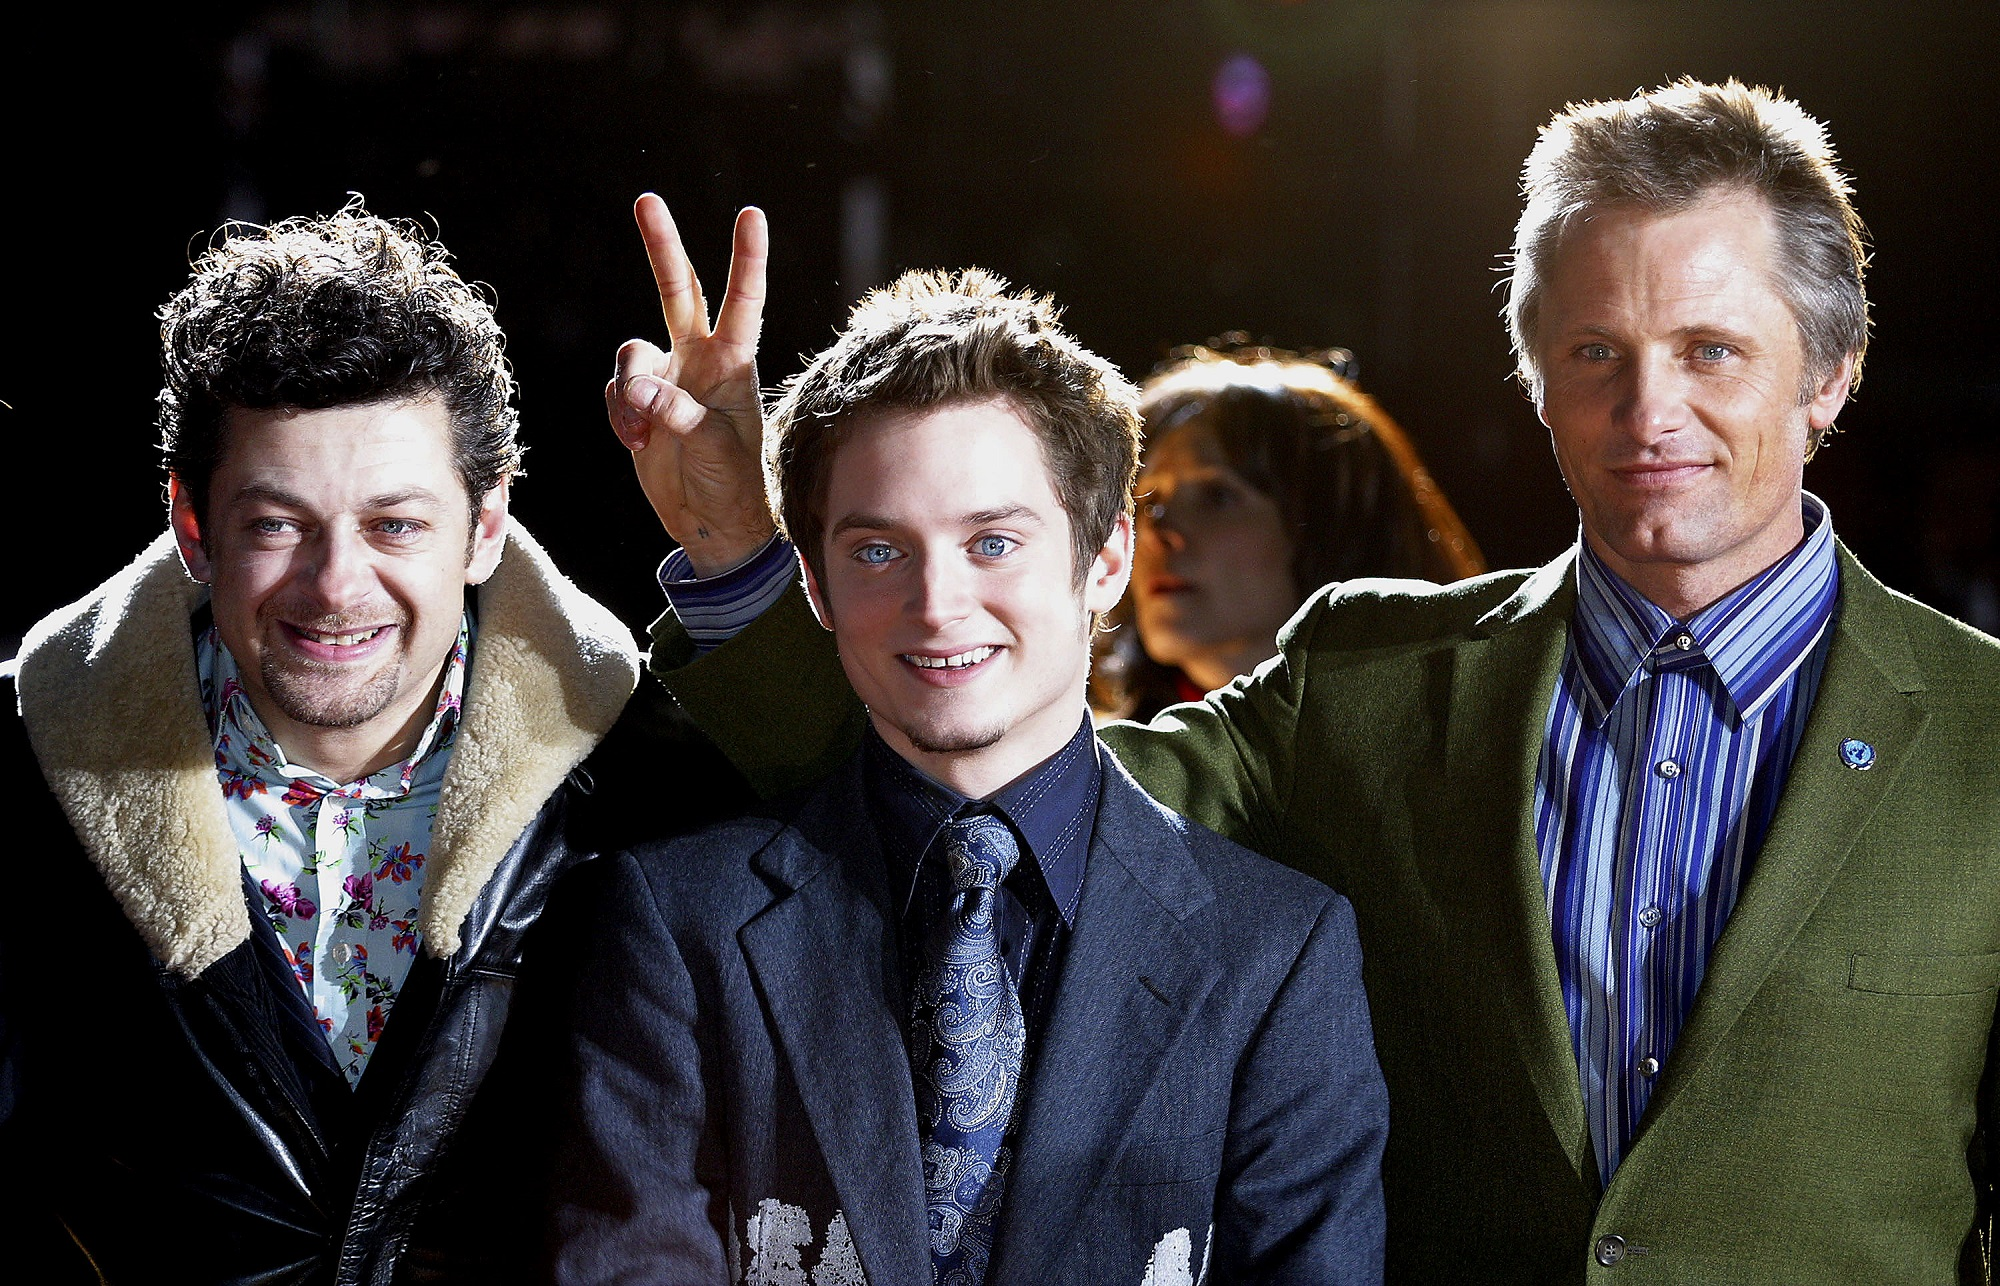 Andy Serkis, Elijah Wood, and Viggo Mortensen of Lord of the Rings